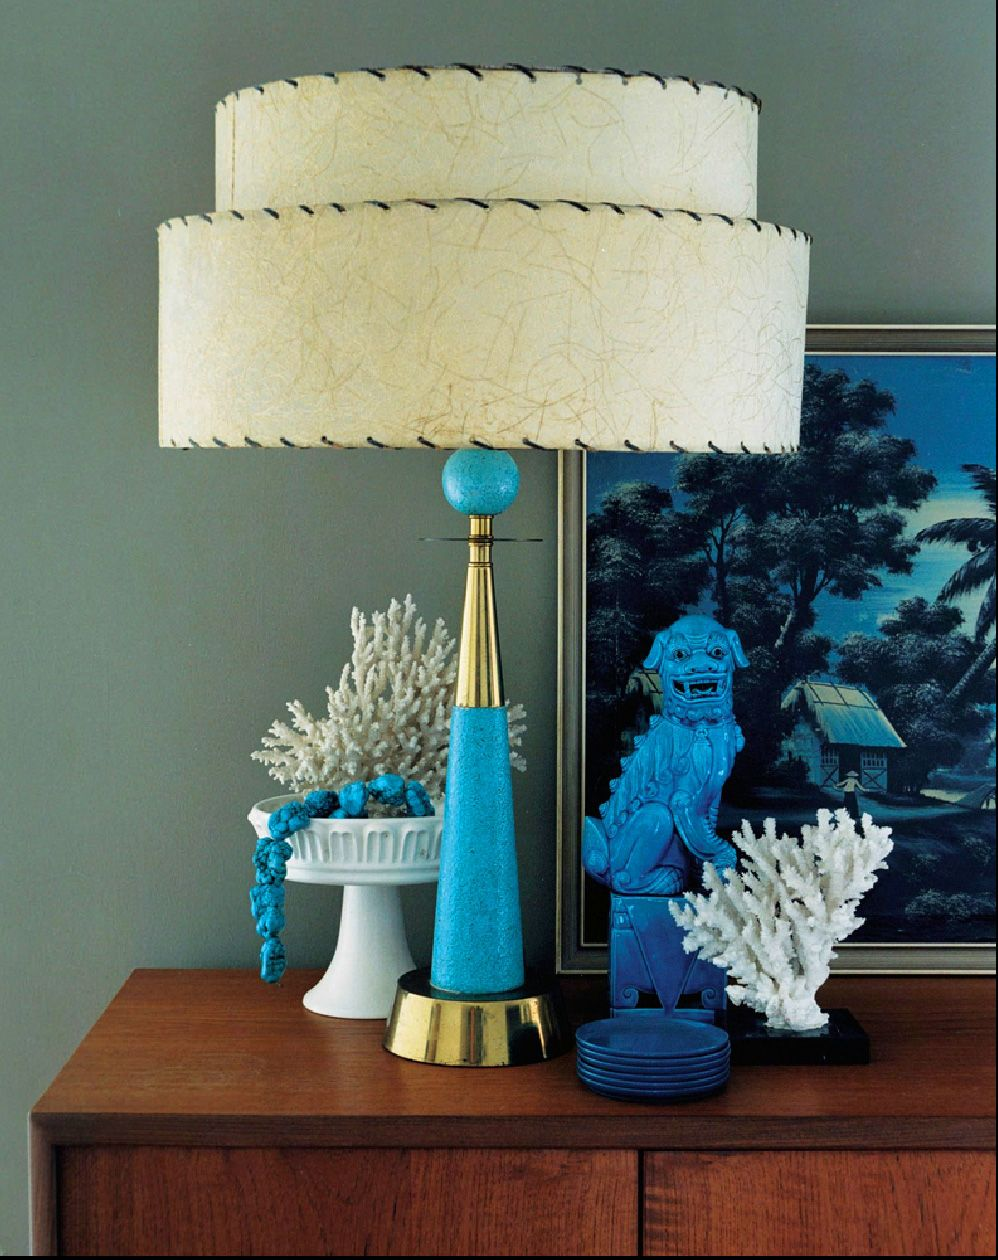 Add something quirky, its the easiest trick in the decorating book and it takes your interior to another level